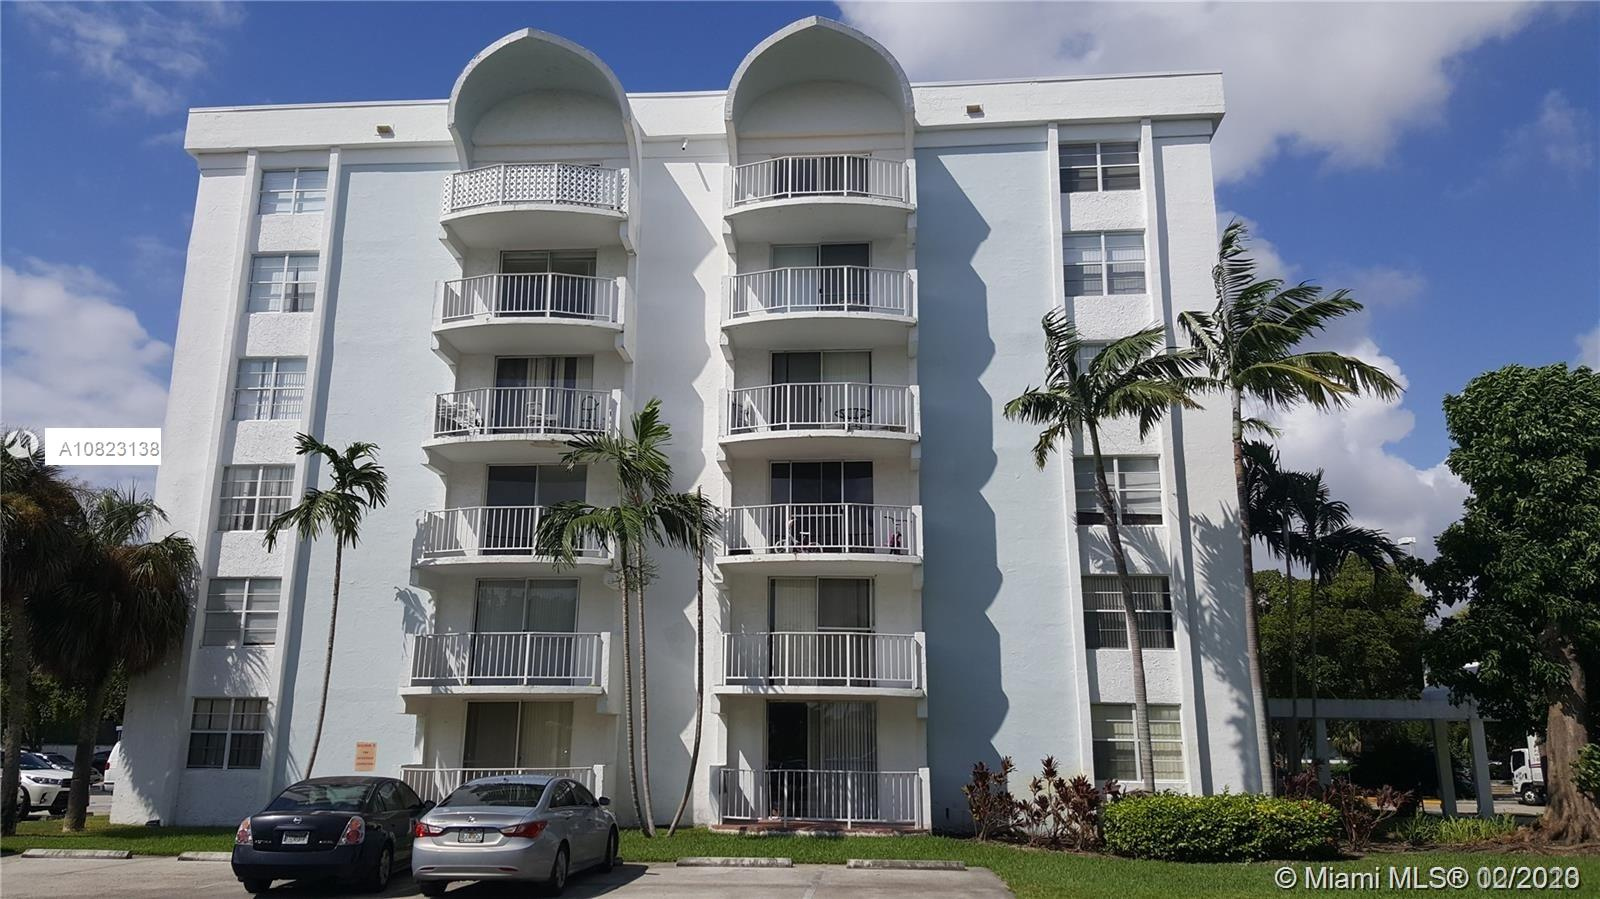 496 NW 165th St Rd # D412, Miami, Florida 33169, 2 Bedrooms Bedrooms, ,2 BathroomsBathrooms,Residential,For Sale,496 NW 165th St Rd # D412,A10823138